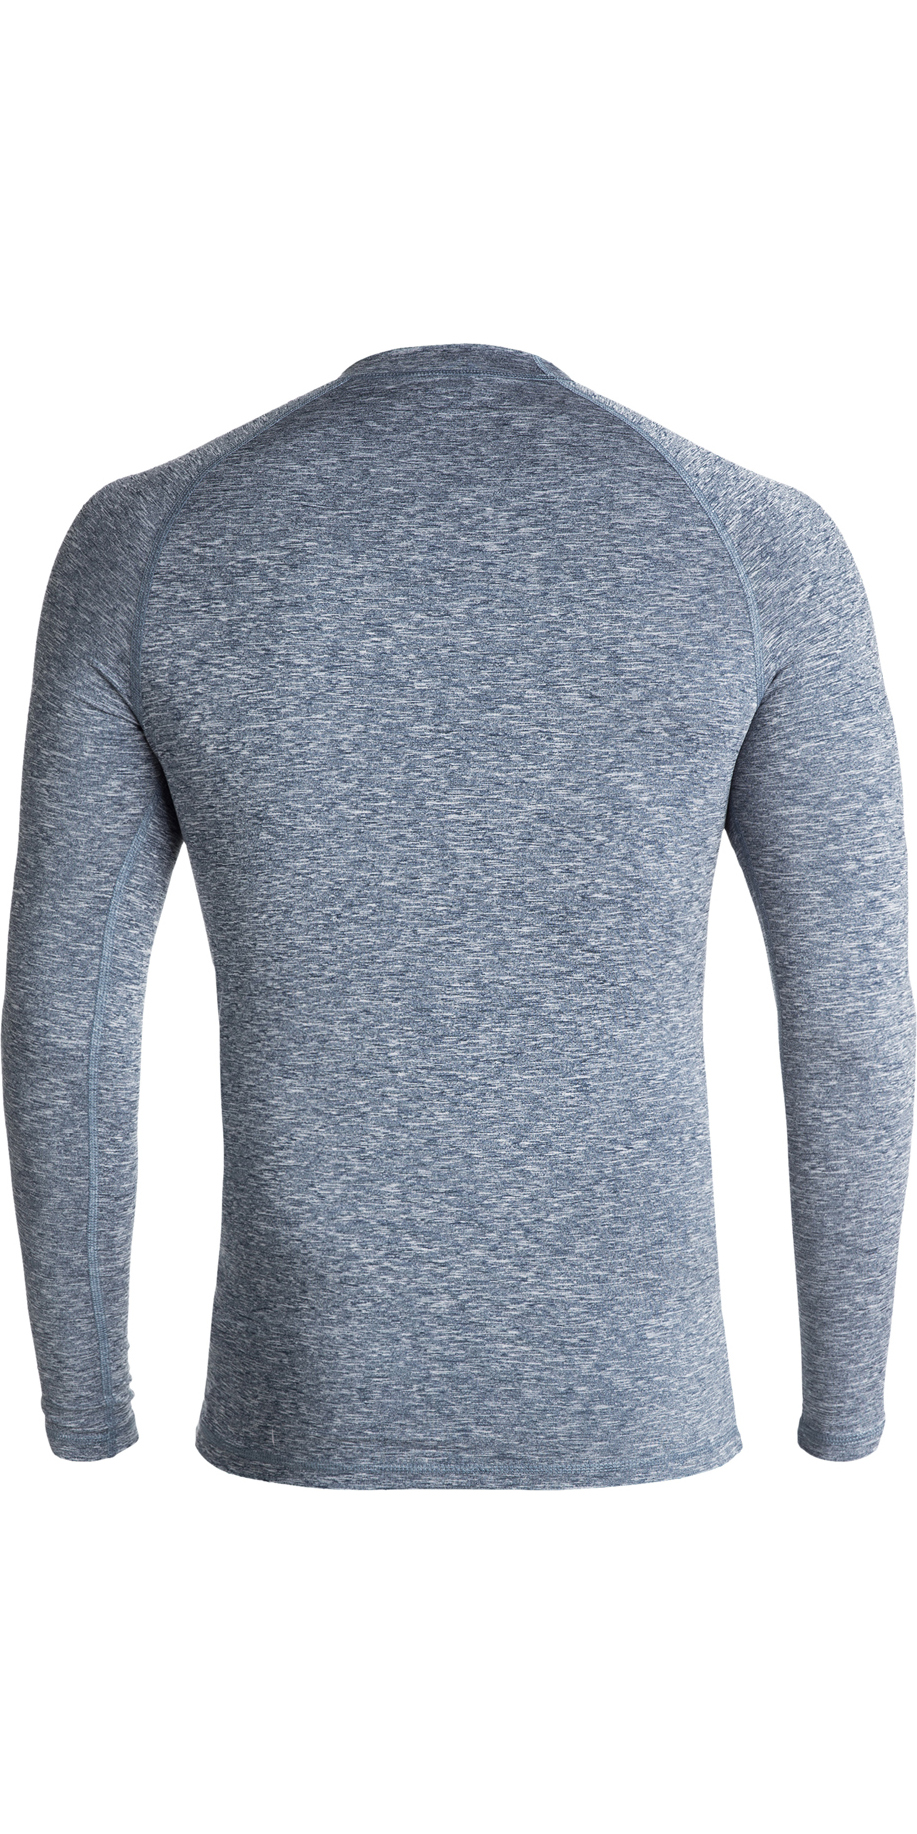 2019 Quiksilver All Time Long Sleeve Rash Vest Dark Denim Heather EQYWR03137